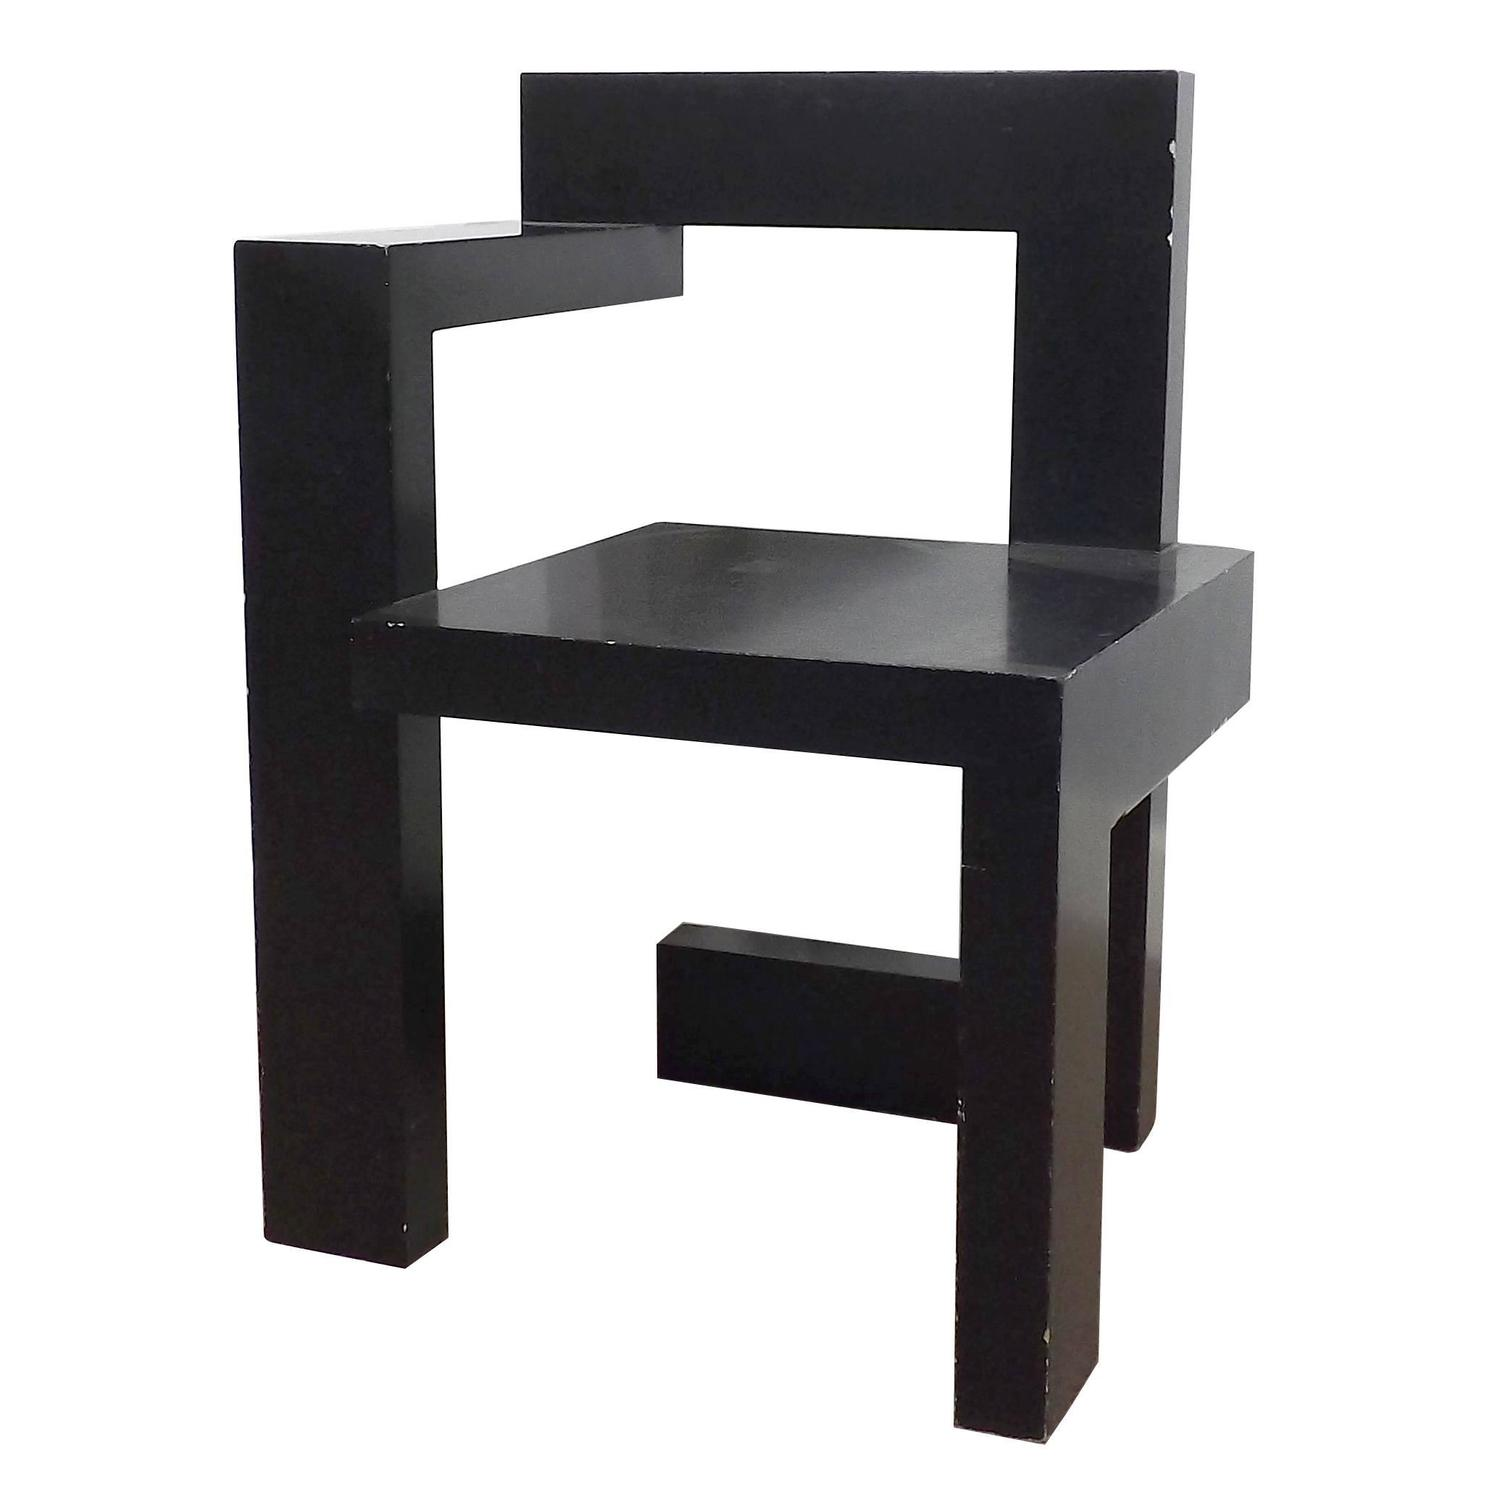 steltman chair designed by gerrit rietveld at 1stdibs. Black Bedroom Furniture Sets. Home Design Ideas